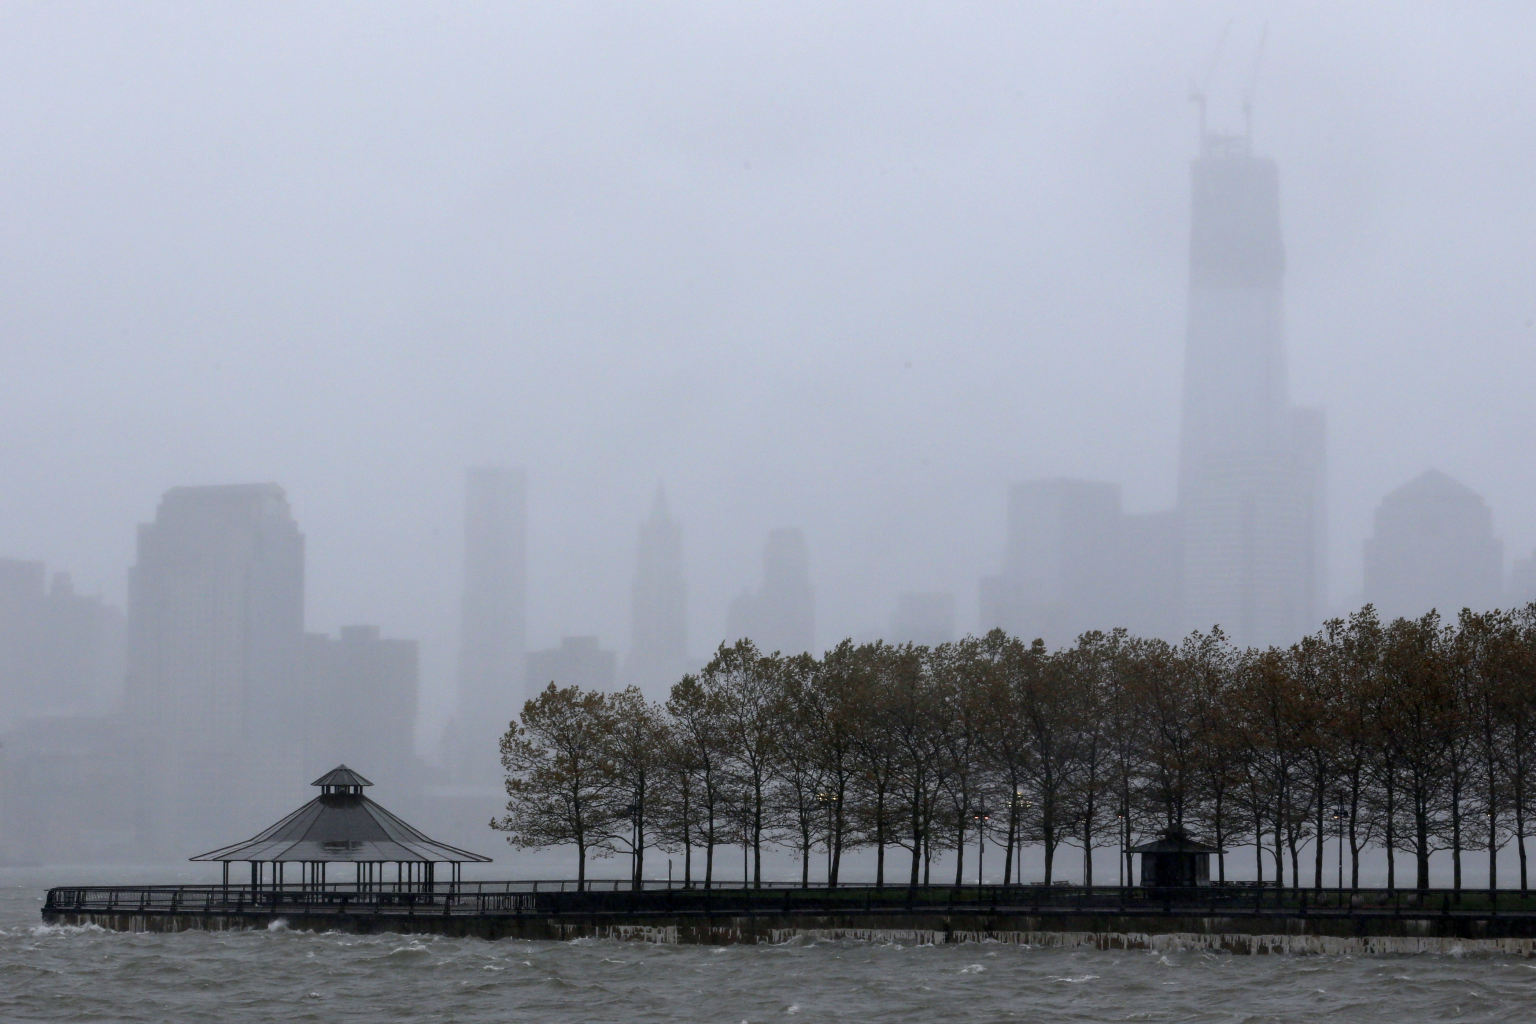 NYC Marathon Not Expected To Be Affected By Storm